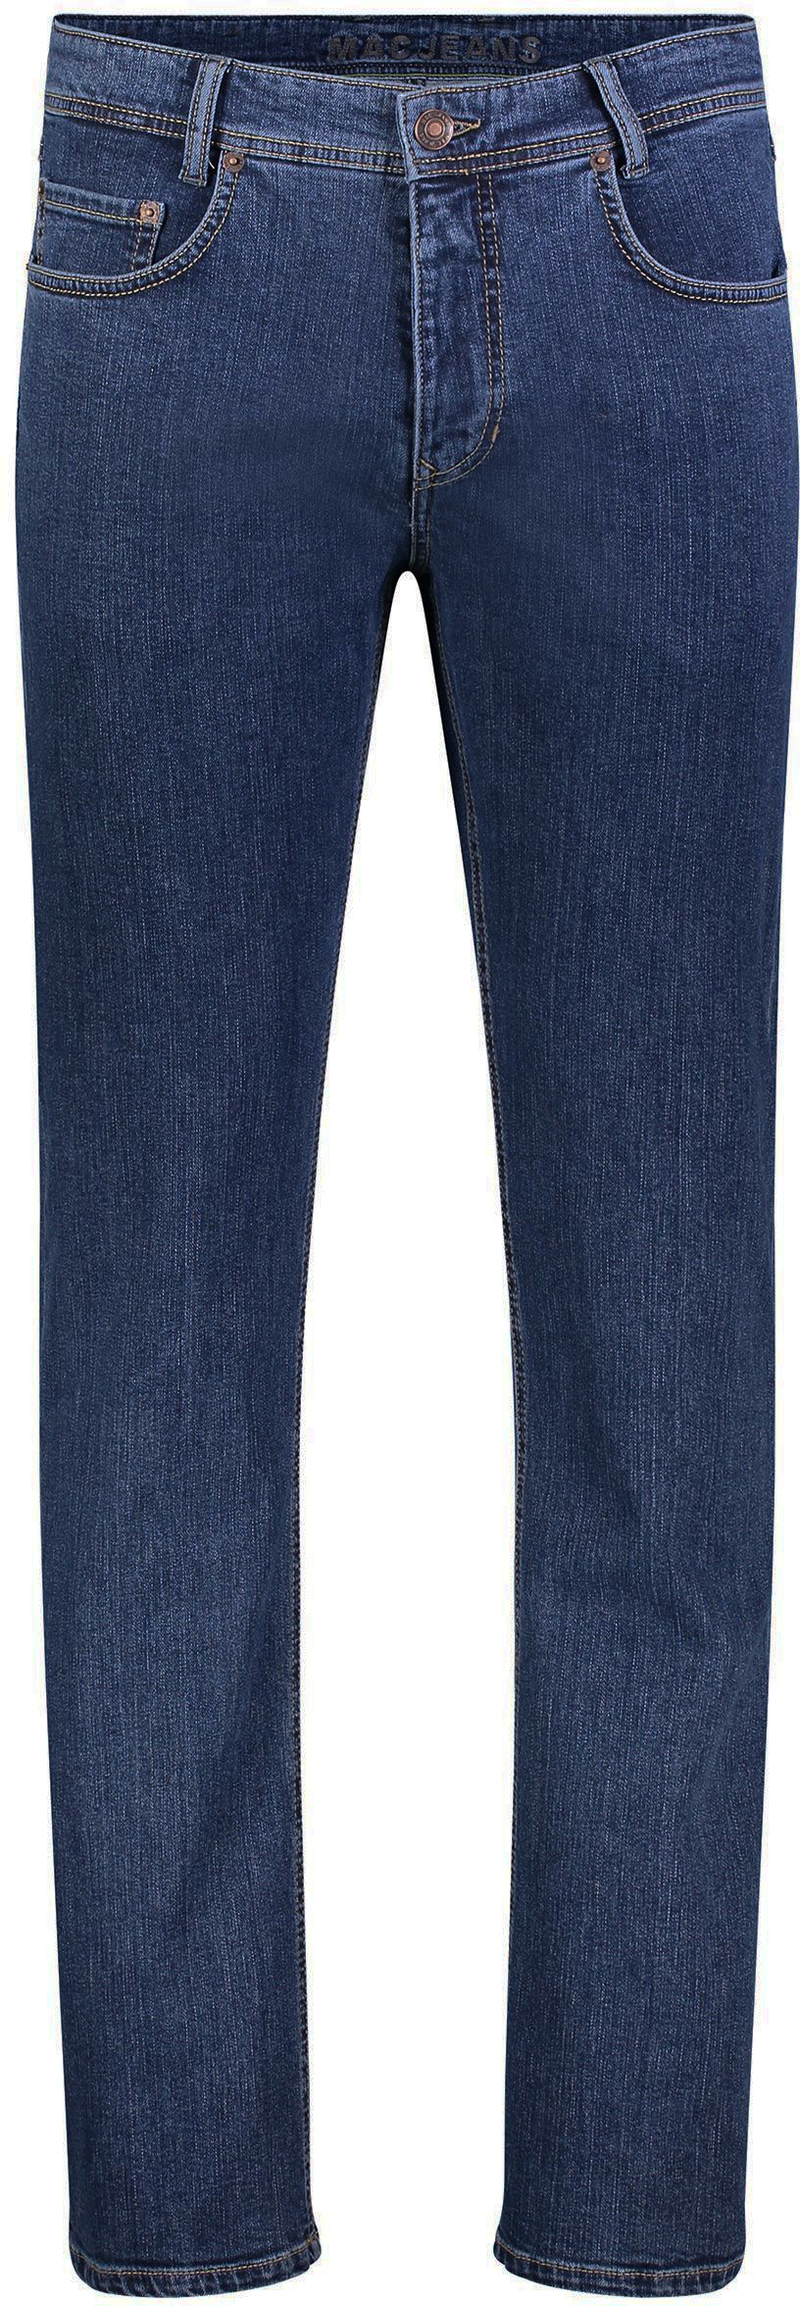 Mac Arne Jeans Light Used Blue Foto 0